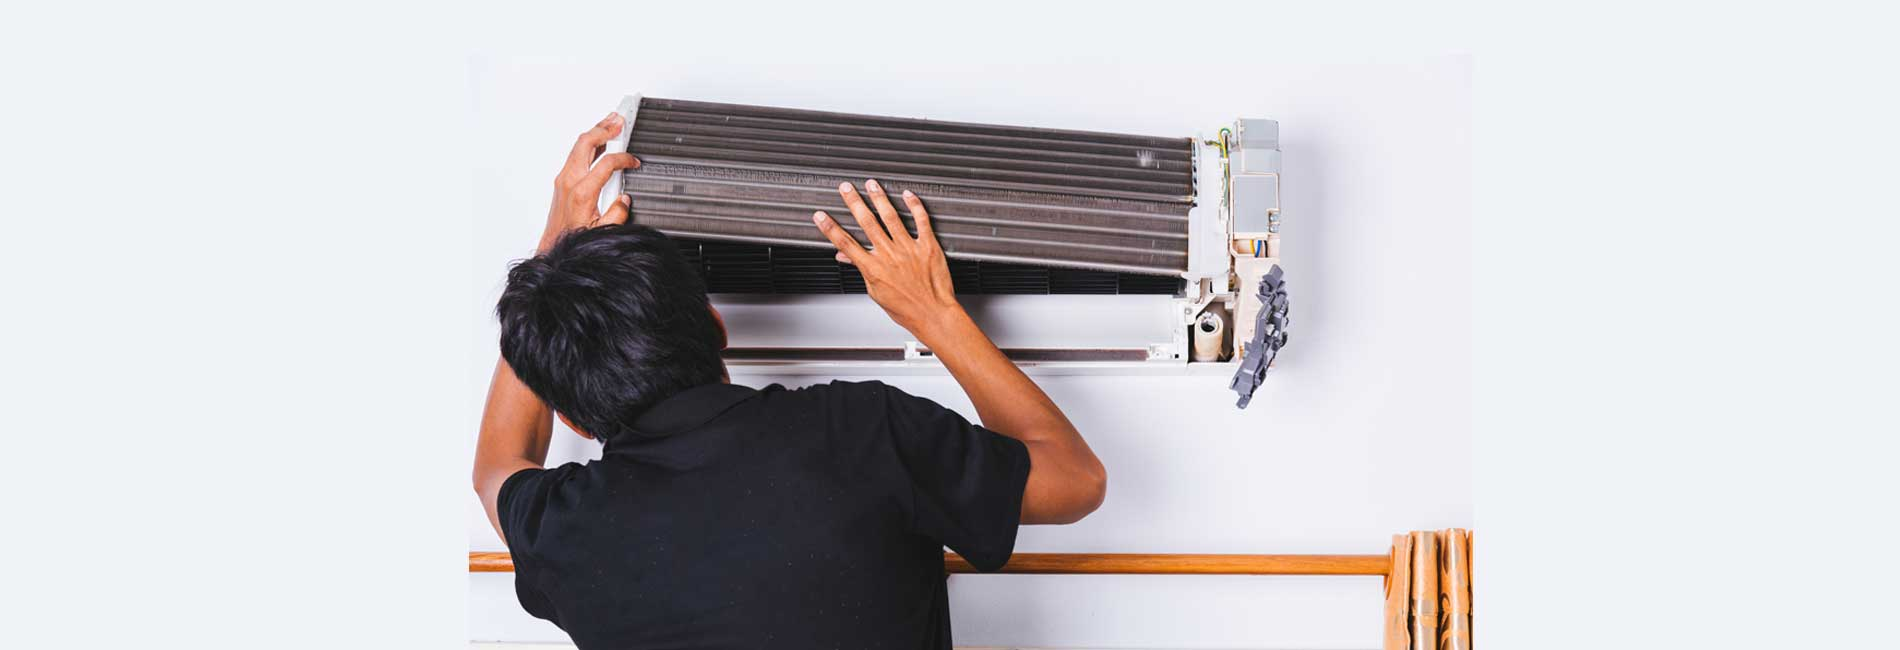 Air Conditioner Repair in East Tambaram